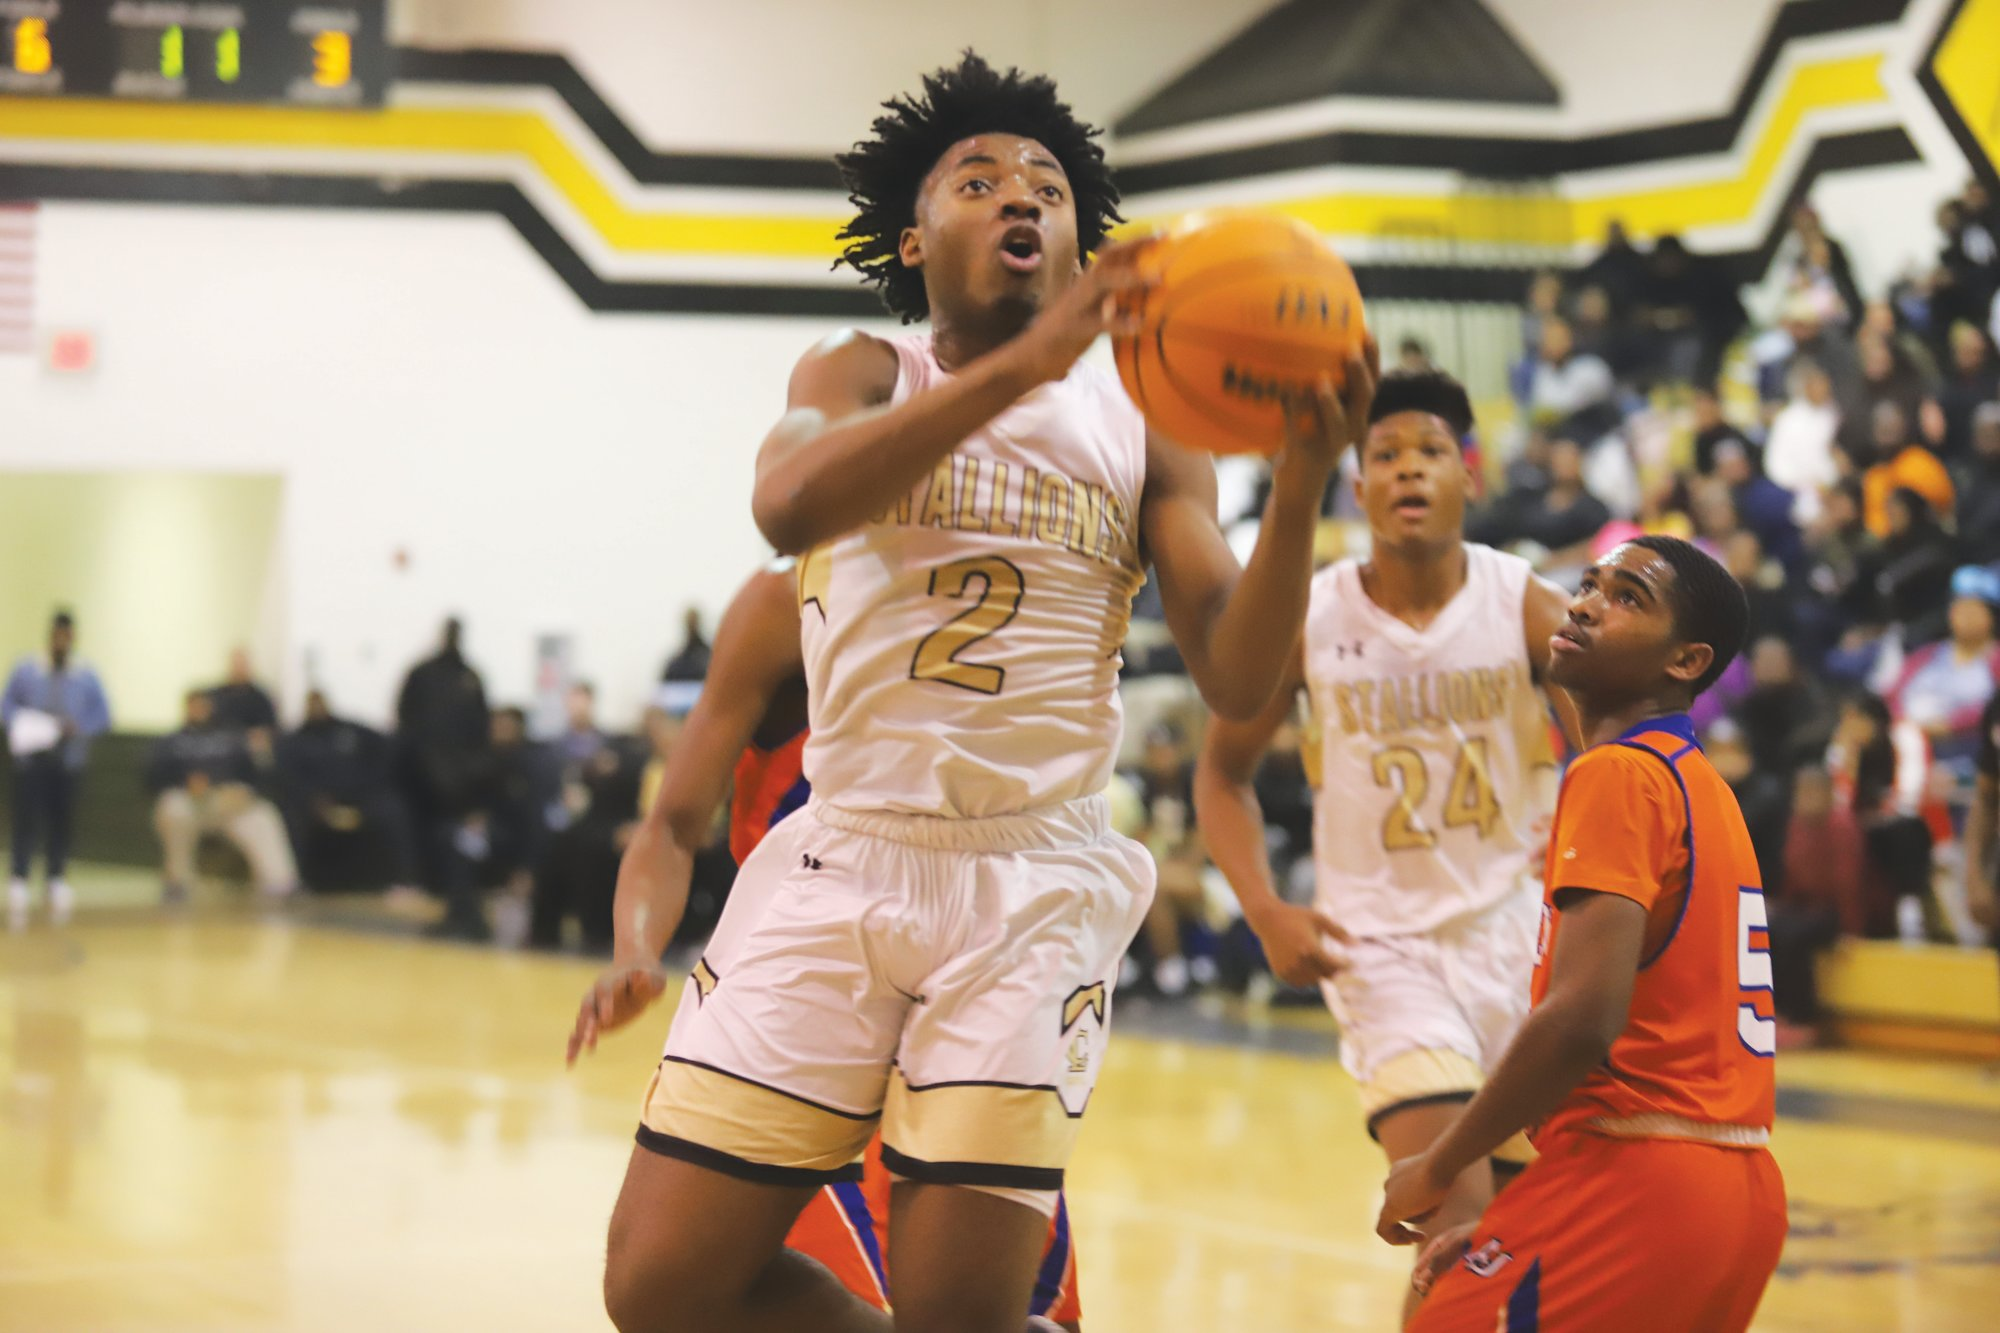 Lee Central's DaVeon Thomas drives to the basket during the Stallions' 64-57 win over Andrew Jackson on Tuesday. Thomas scored 16 points in the win, bringing him just 10 points shy of 1,000 points for his career.